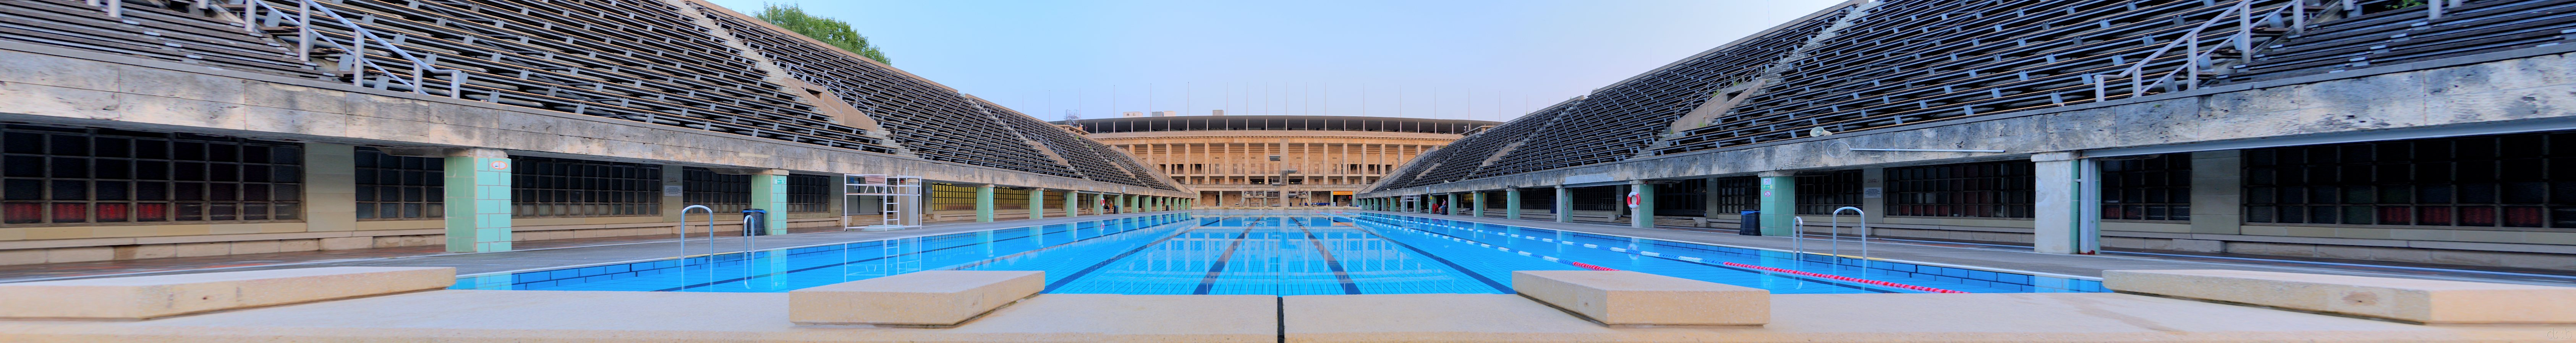 The competition pool's starting blocks in Berlin's olympic swimming stadium